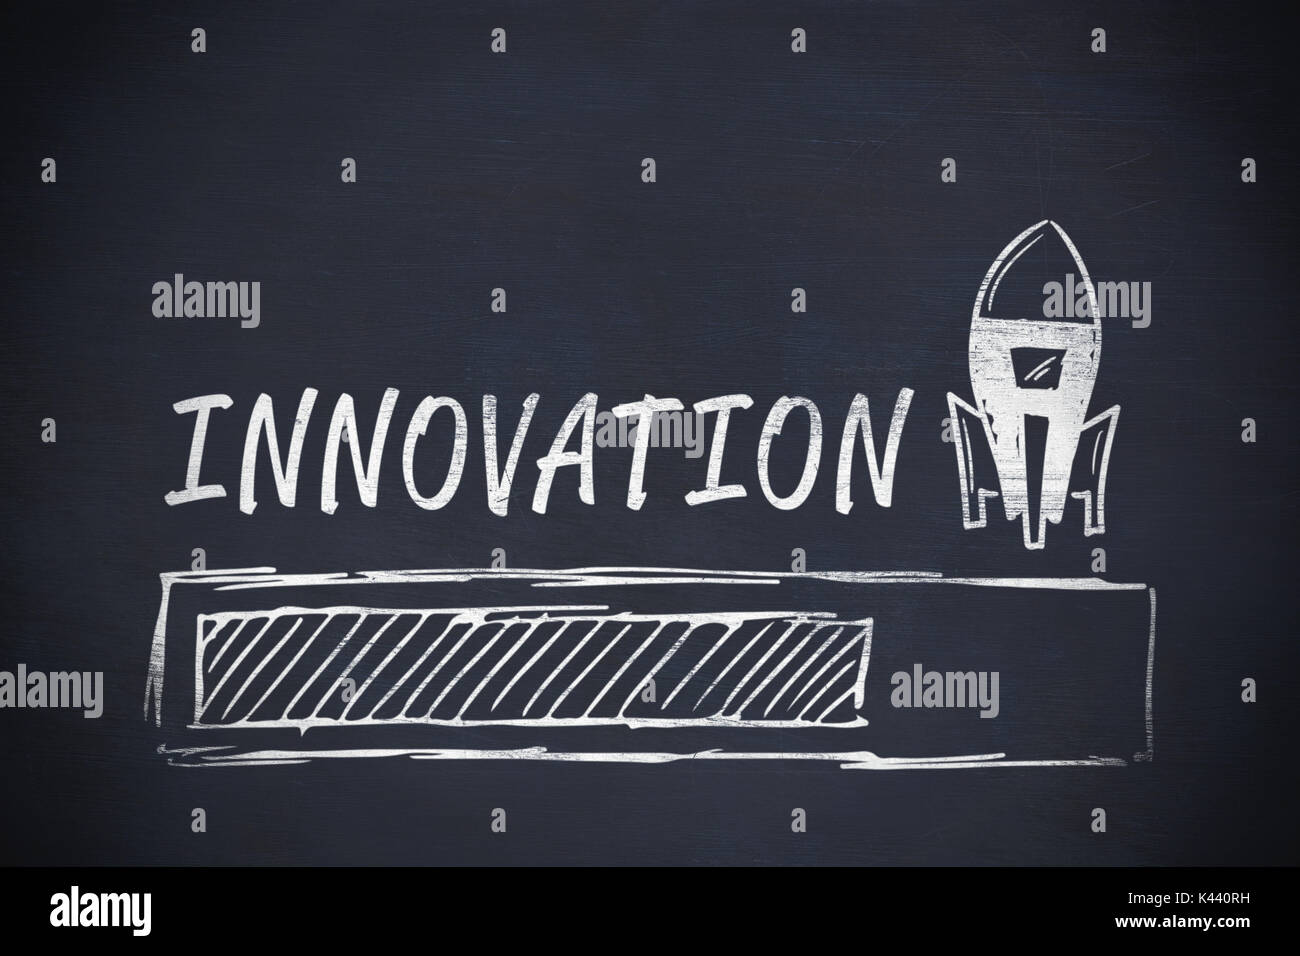 Graphic image of innovation text with loading and rocket symbol graphic image of innovation text with loading and rocket symbol against black background biocorpaavc Image collections